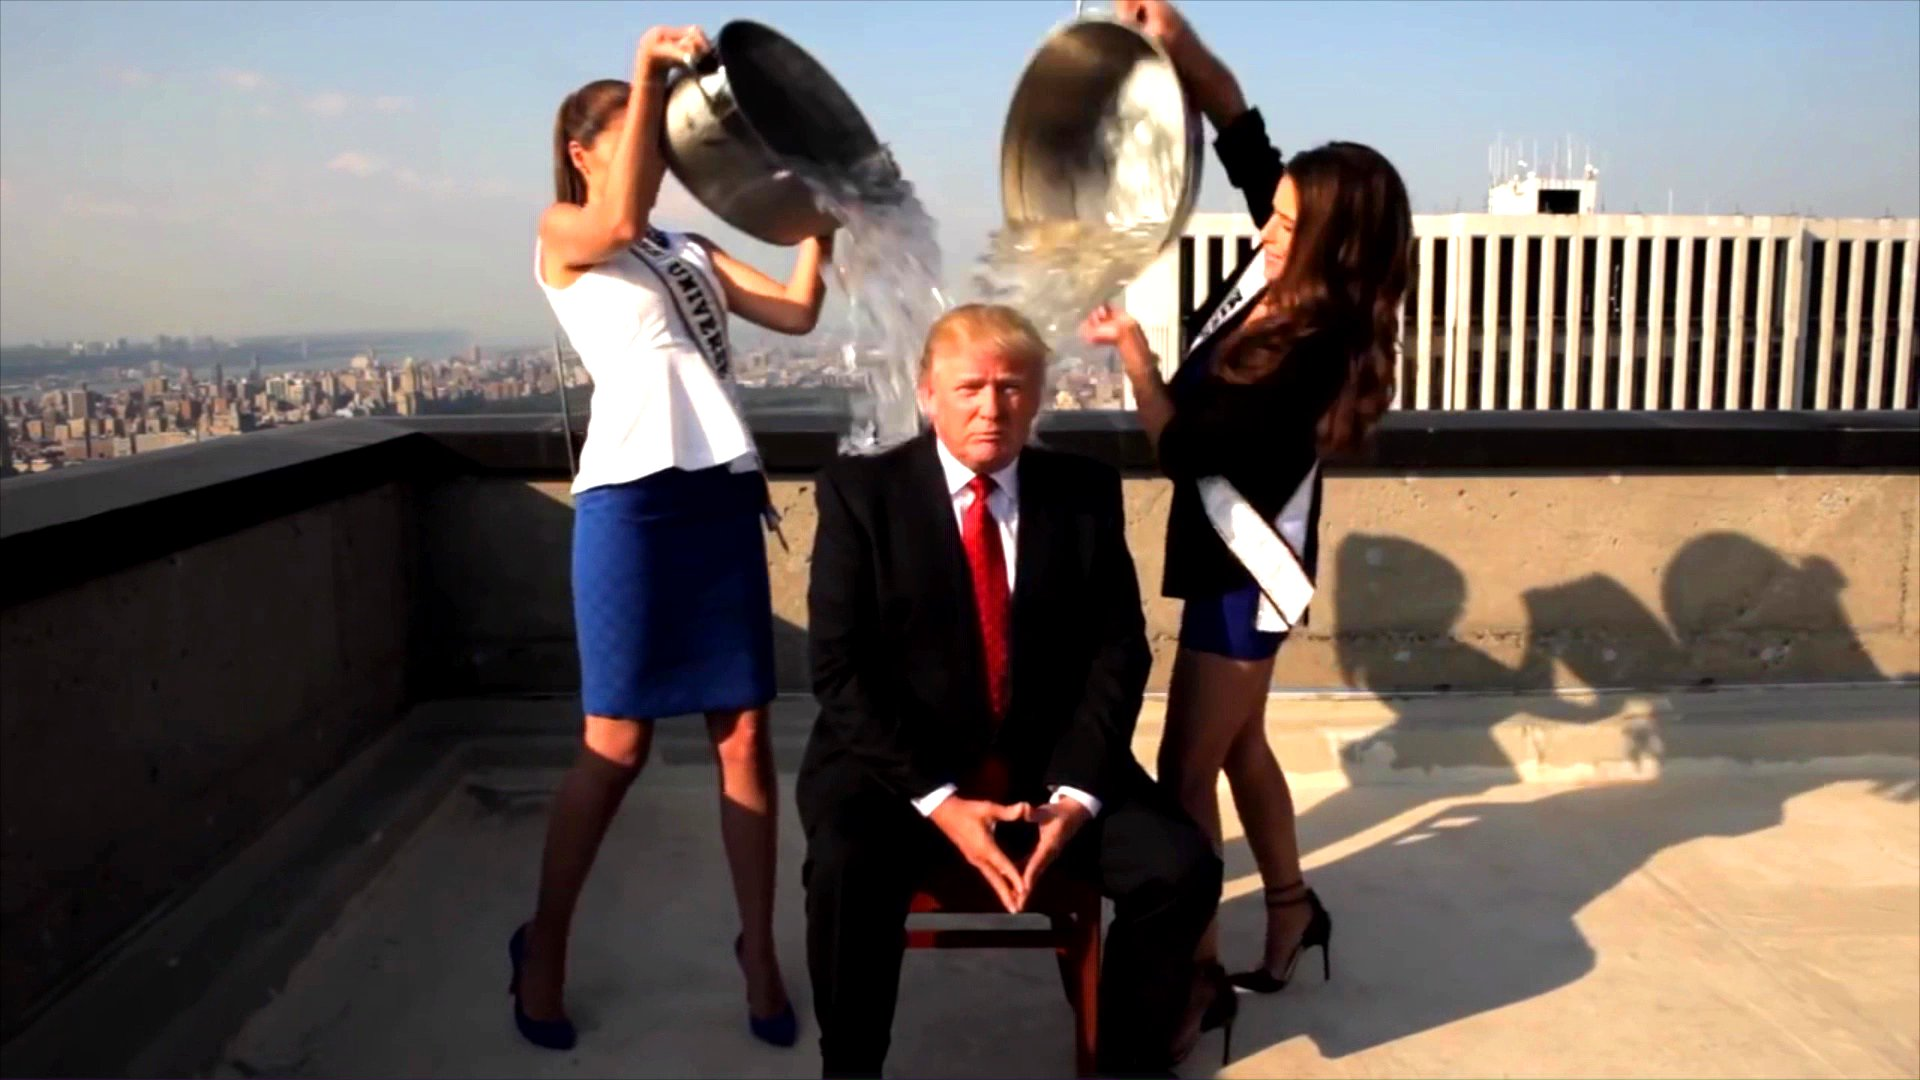 Donald Trumps Ice Bucket Challenge.